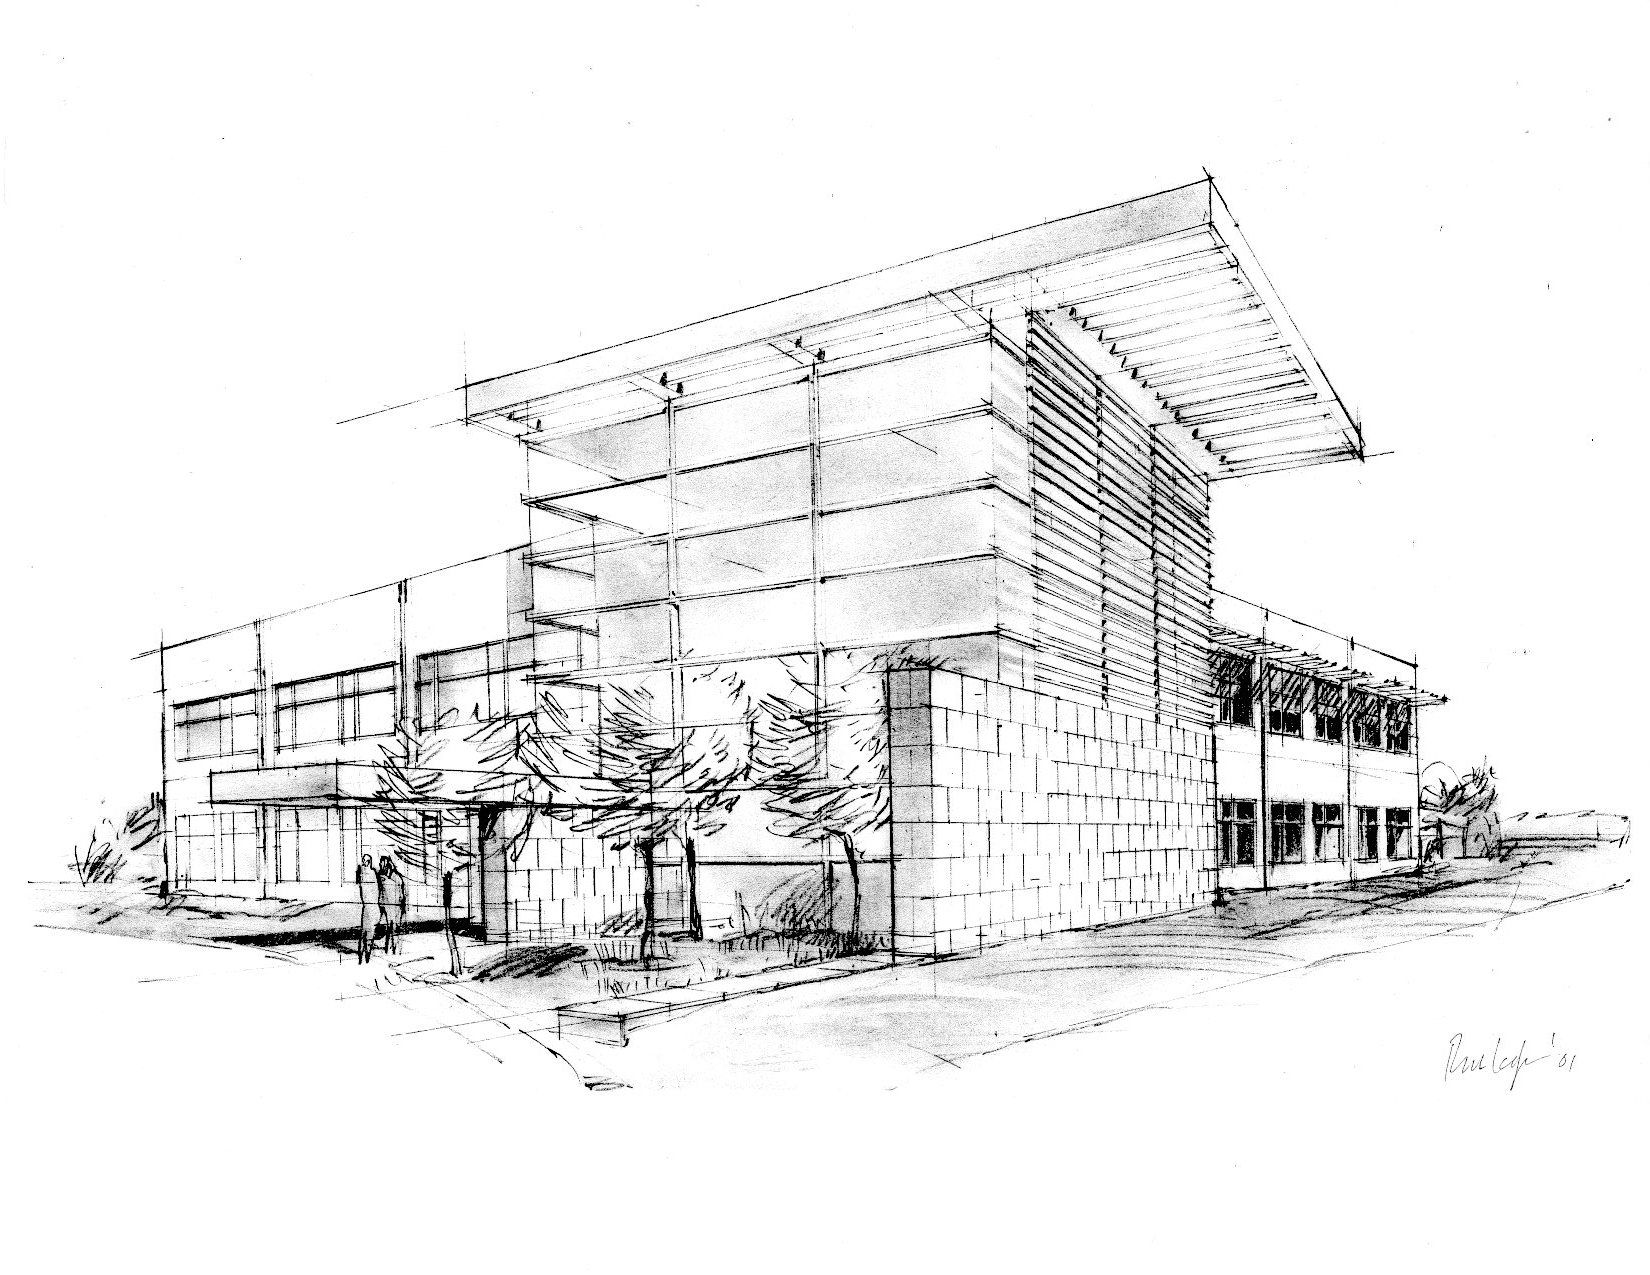 Beautiful Building Design Sketches With Pencil Sketch Of Architectural Concept For The Entry